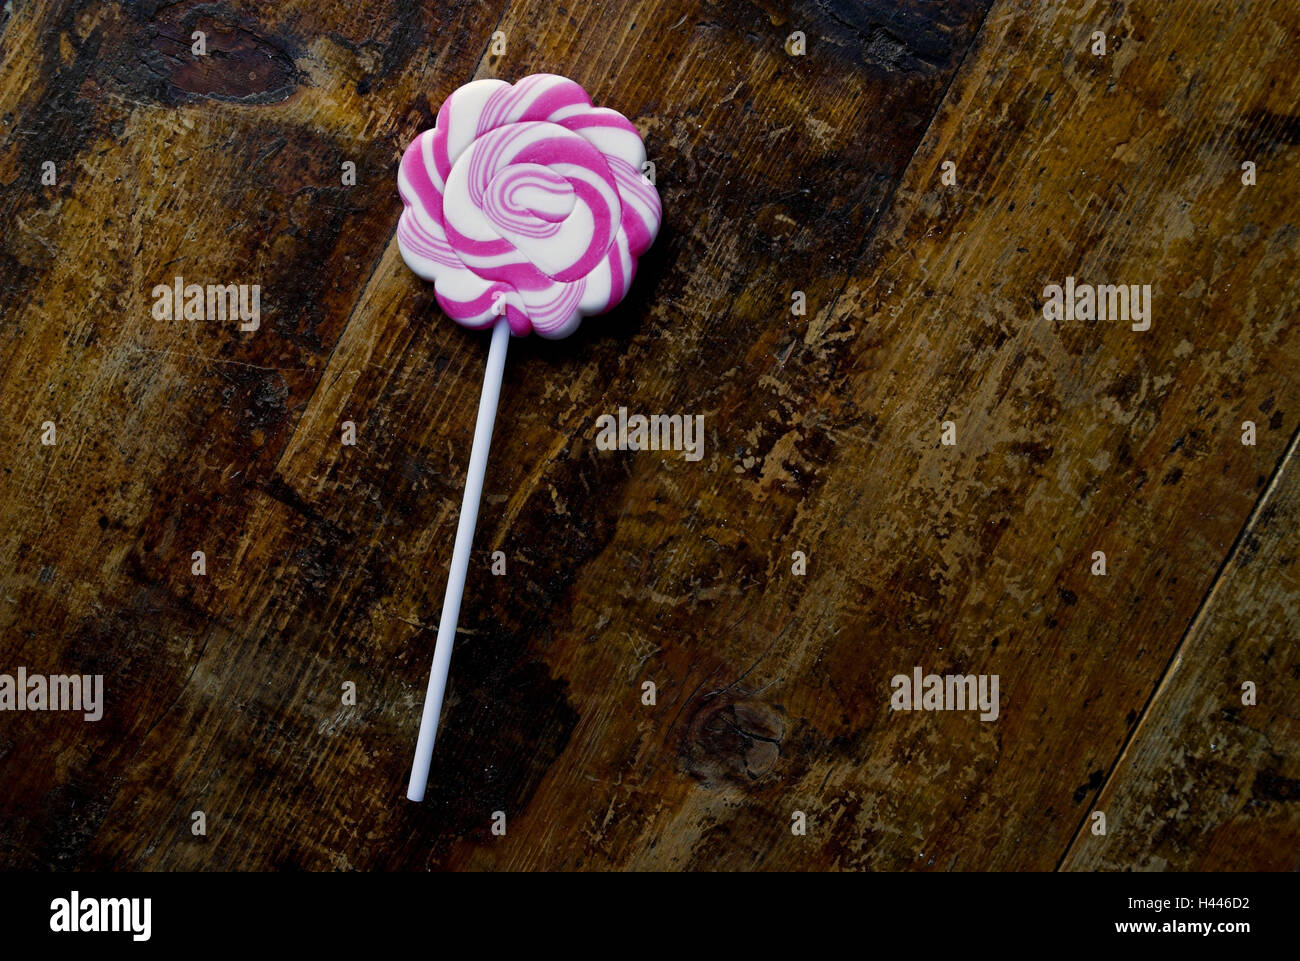 Lolli on Wooden table, - Stock Image